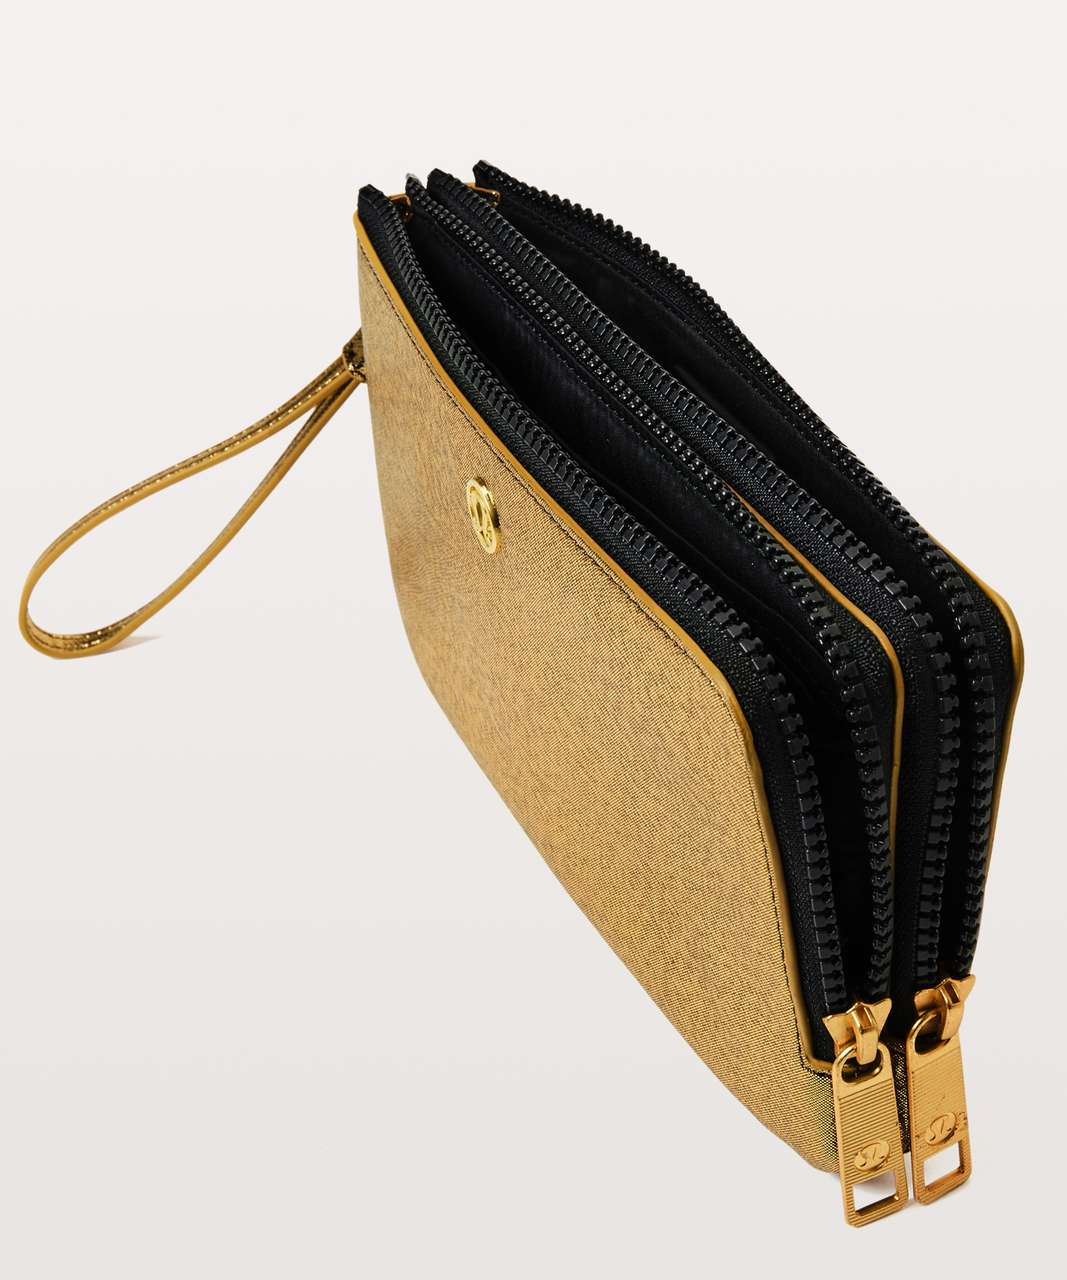 Lululemon Double Up Pouch - Gold